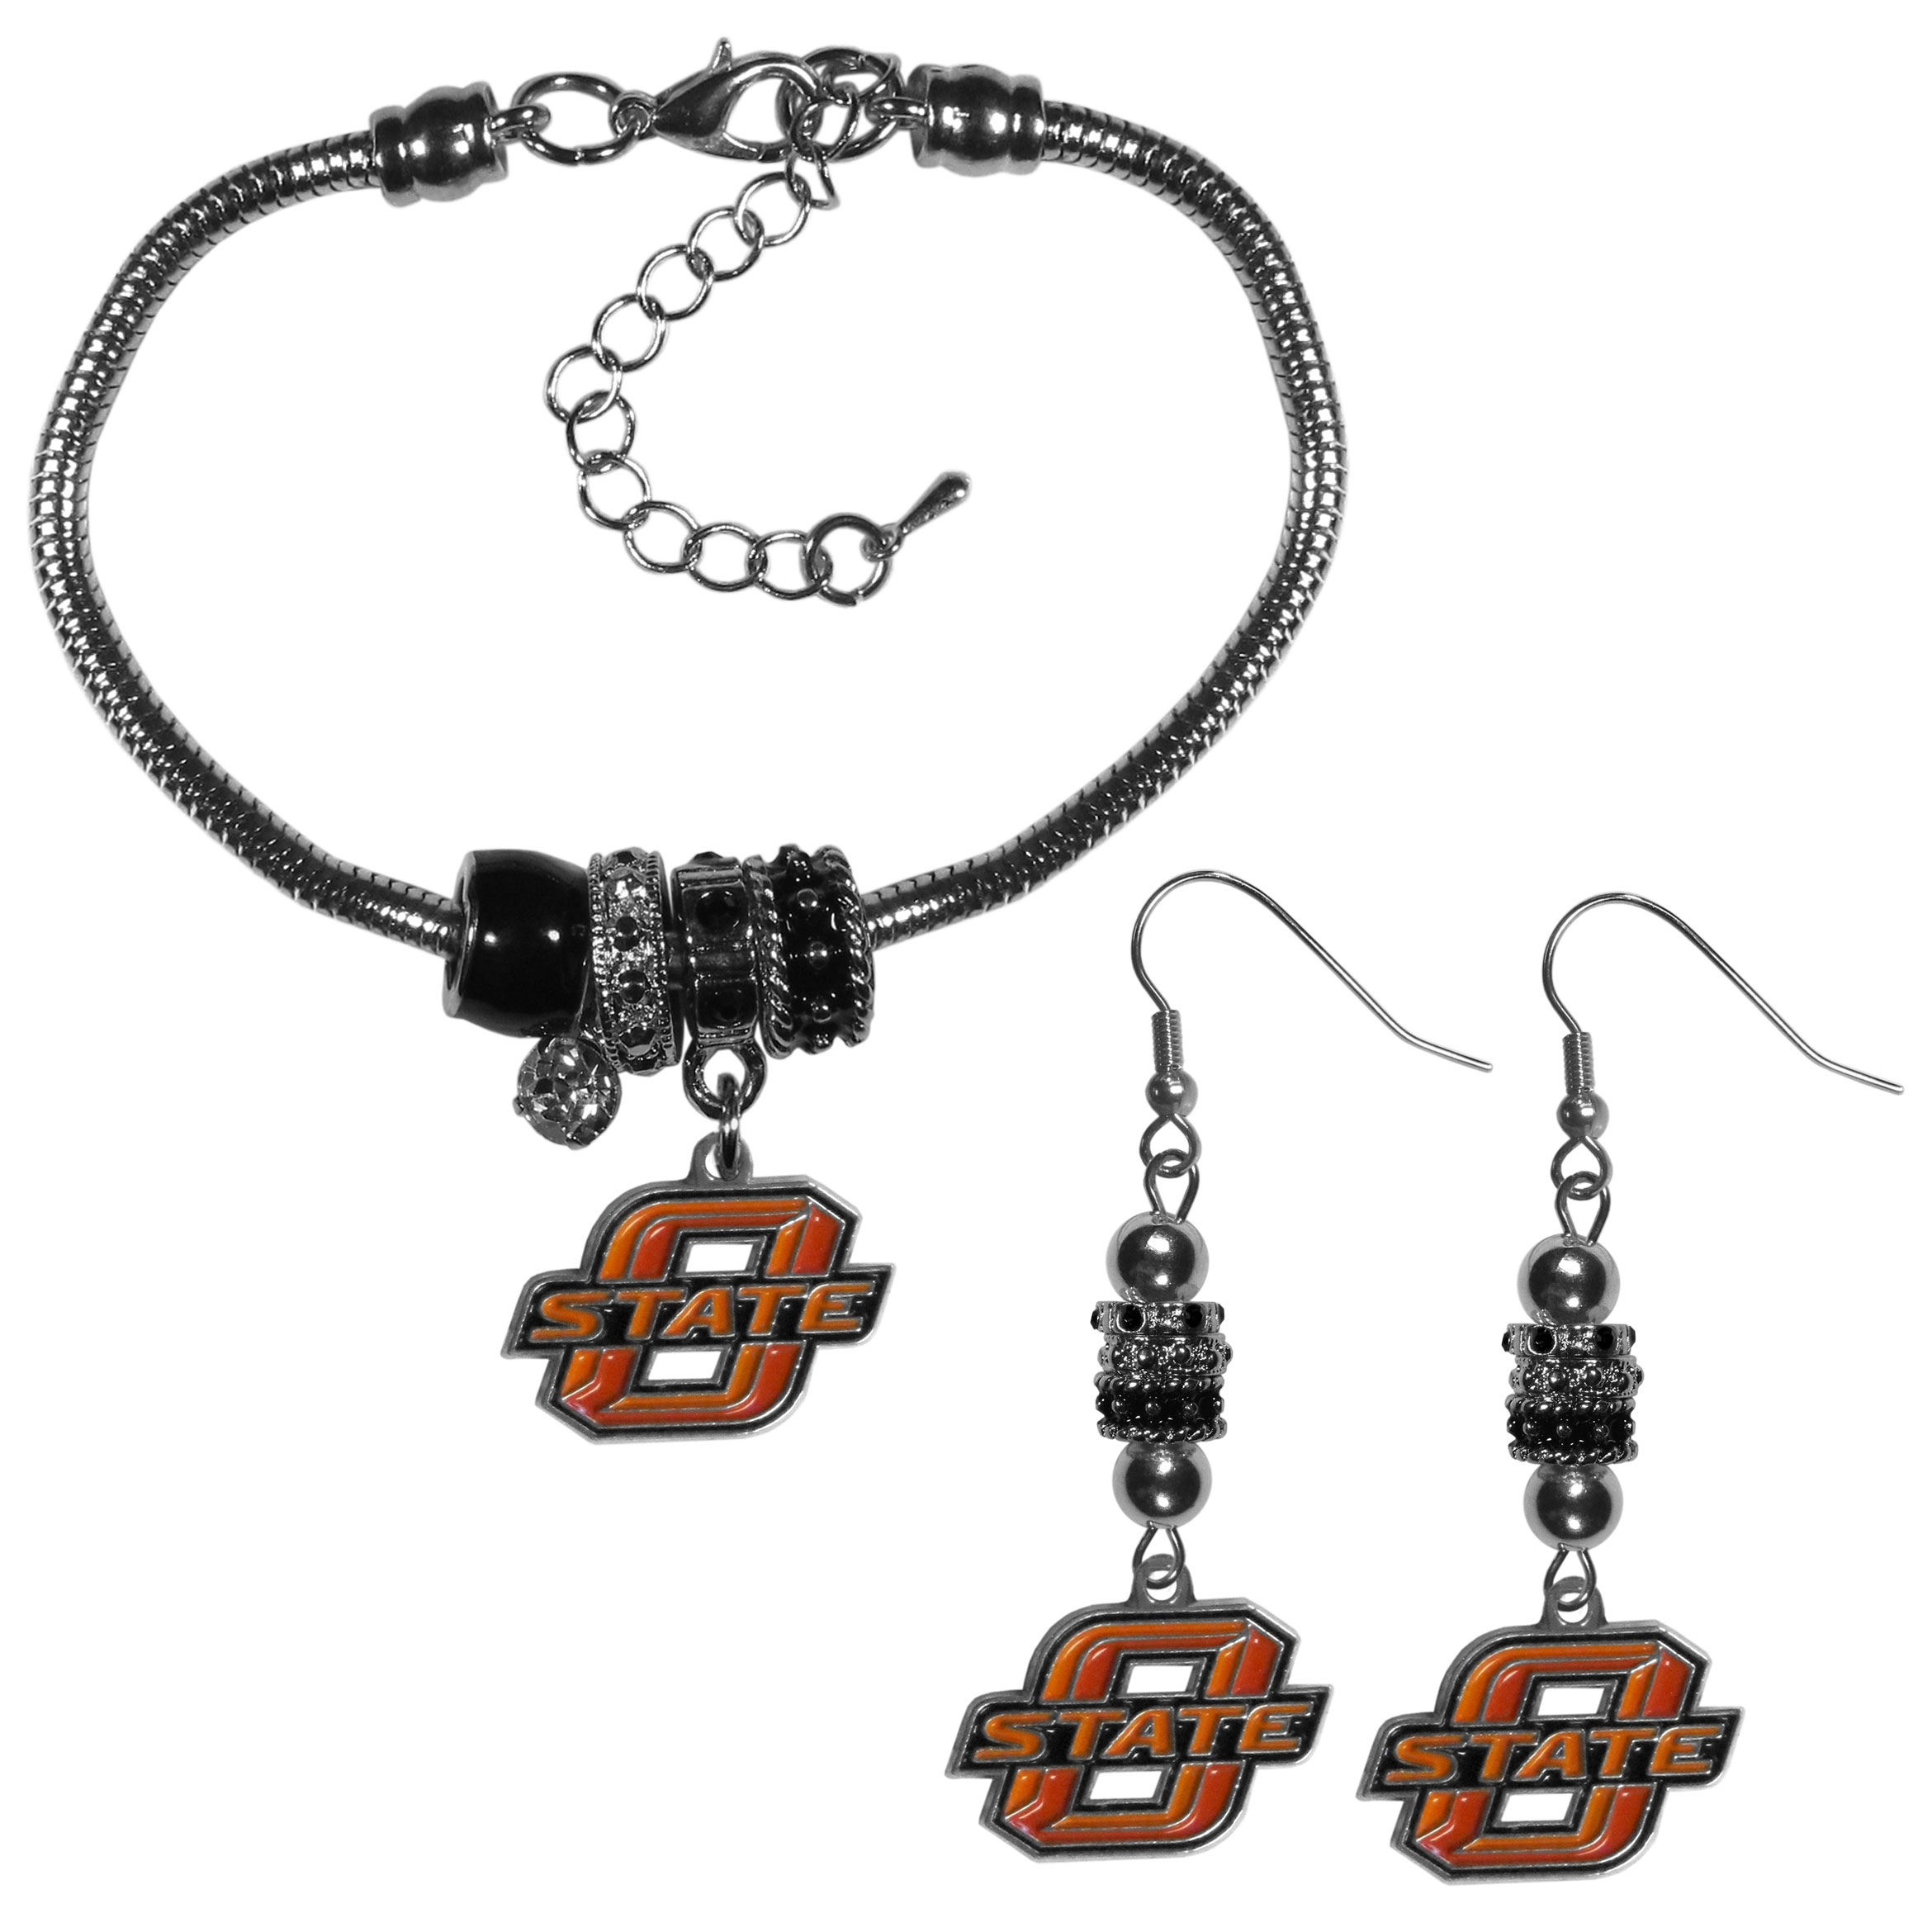 Oklahoma St. Cowboys Euro Bead Earrings and Bracelet Set - We combine the popular Euro bead style with your love of the Oklahoma St. Cowboys with this beautiful jewelry set that includes earrings and a matching bracelet. The stylish earrings feature hypoallergenic, nickel free fishhook posts and 3 team colored Euro beads and a metal team charm. The matching snake chain bracelet is 7.5 inches long with a 2 inch extender and 4 Euro beads with a rhinestone charm and team charm.